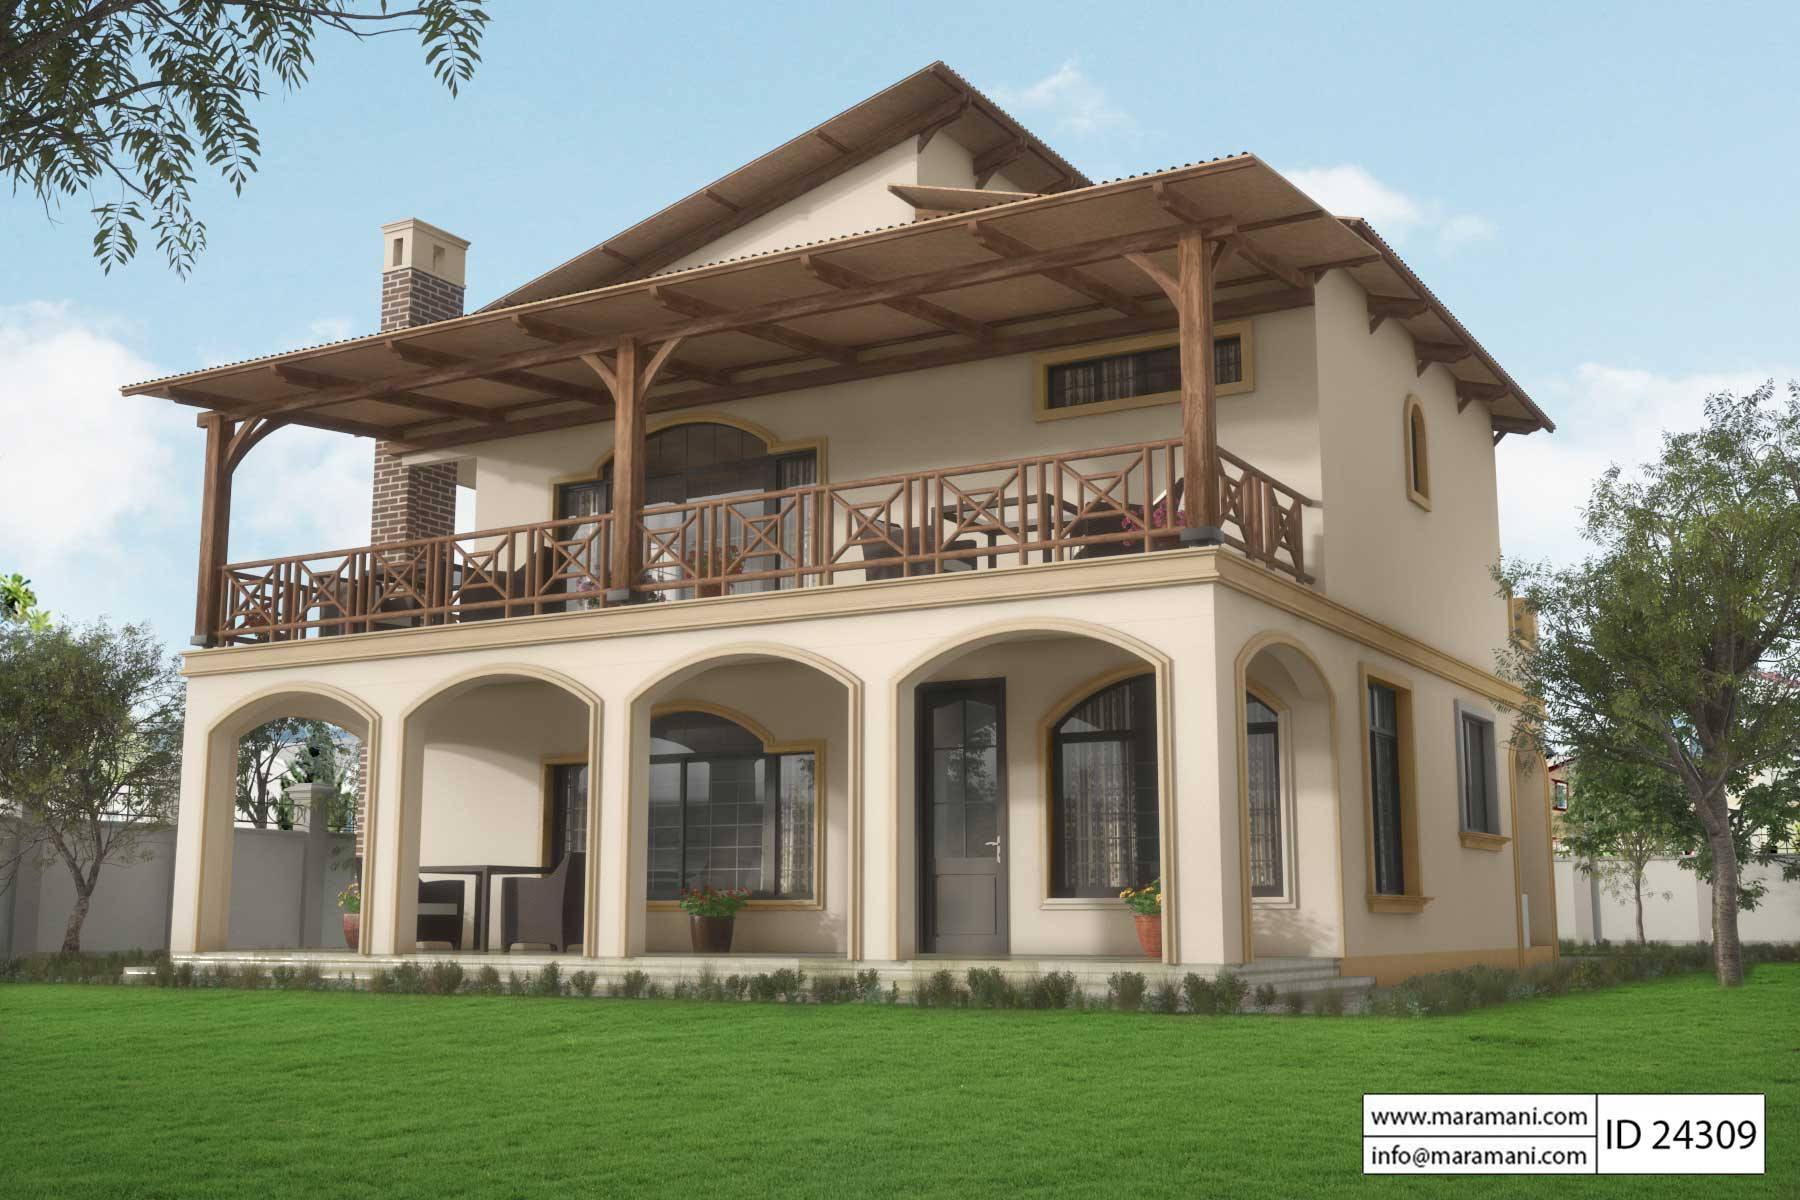 4 brs modern contemporary house plan id 24309 designs by maramani for 4 bedroom cabin plans